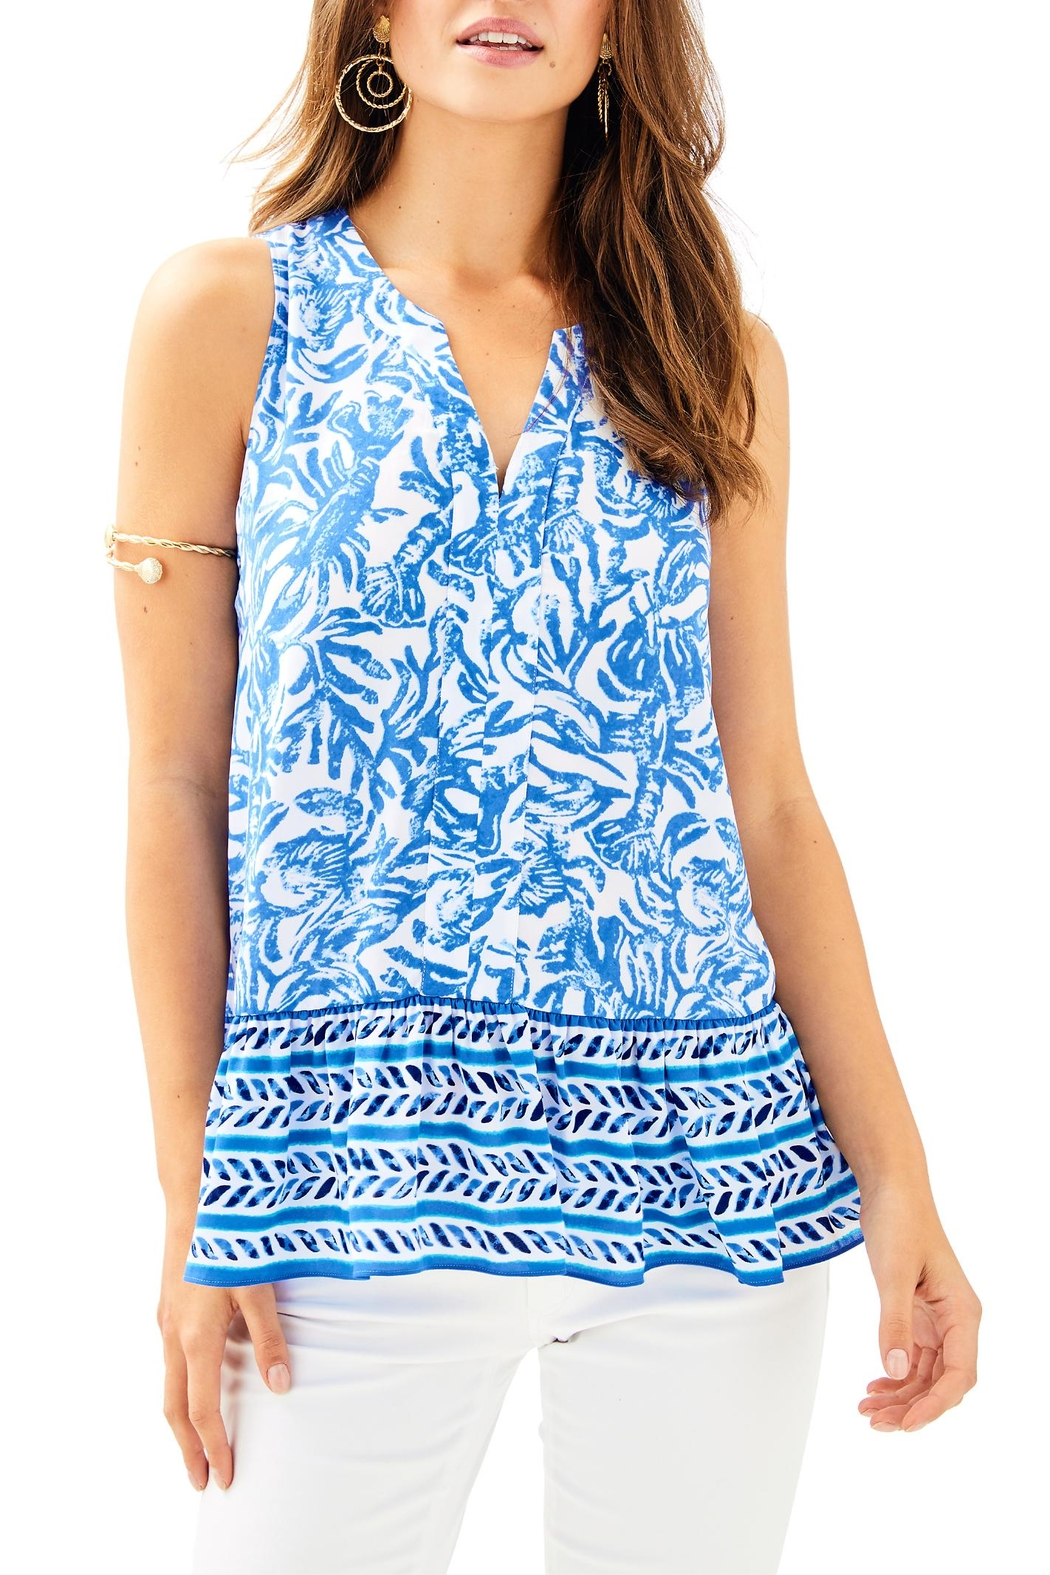 Lilly Pulitzer Gramercy Top - Main Image